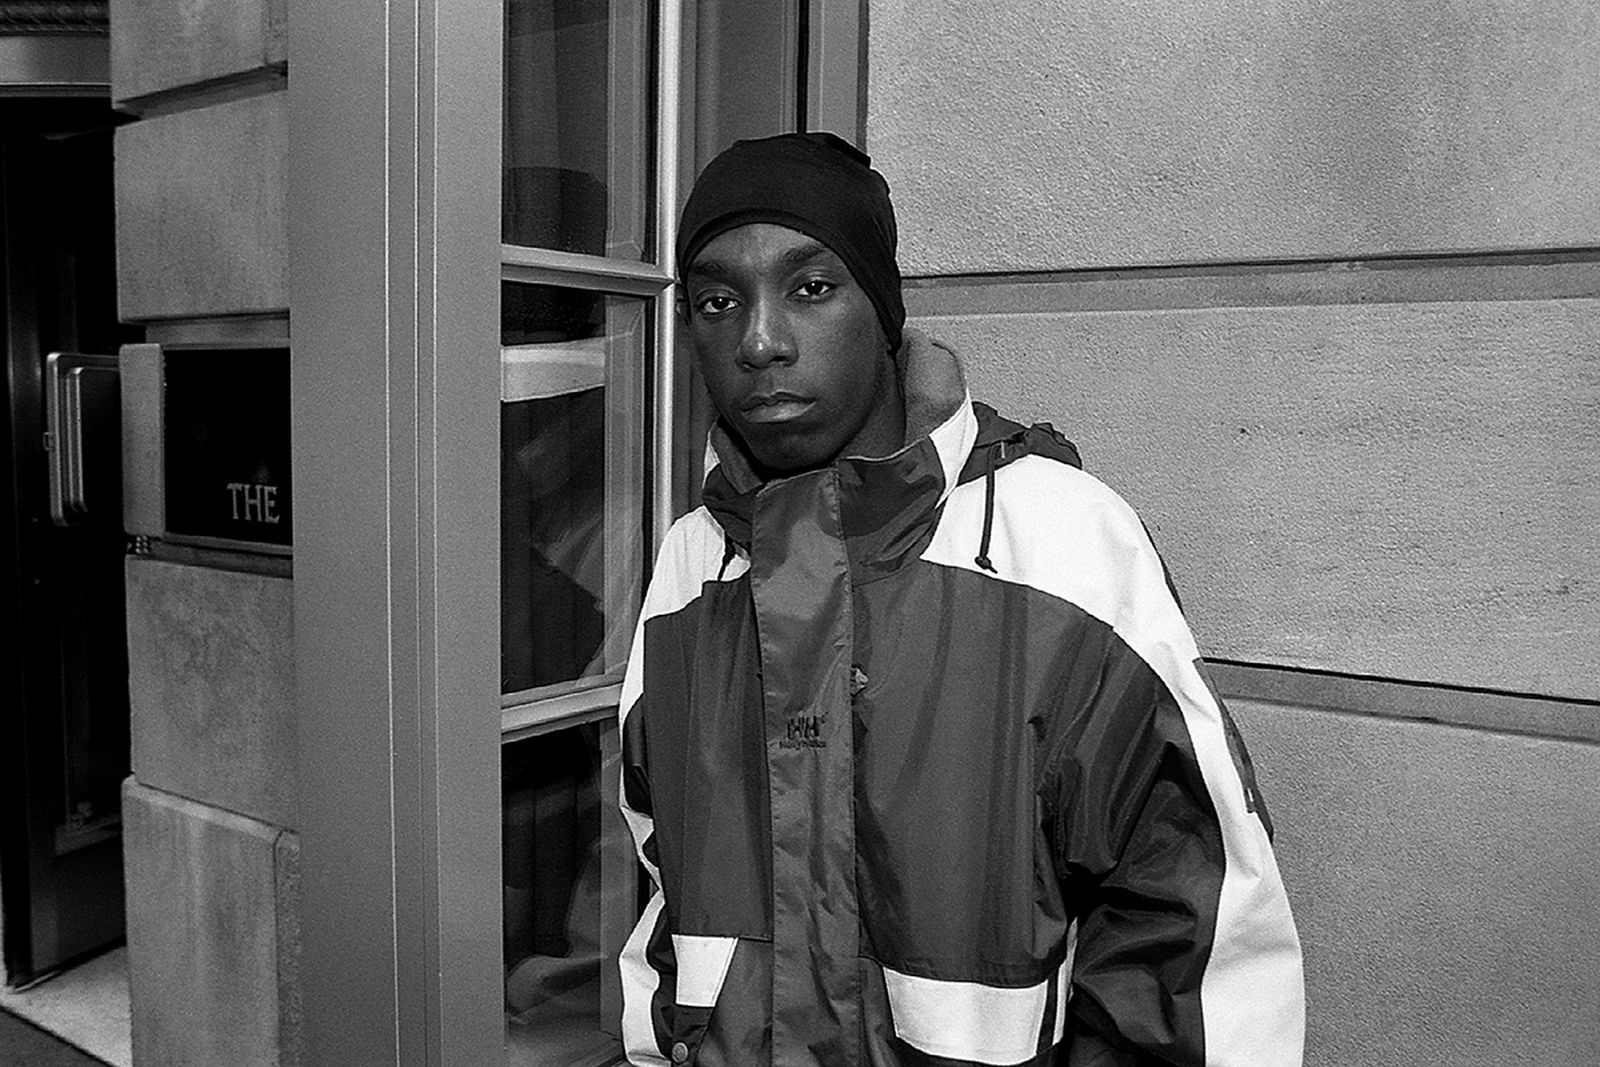 Rapper Big L poses for photos at The Ambassador East Hotel in Chicago